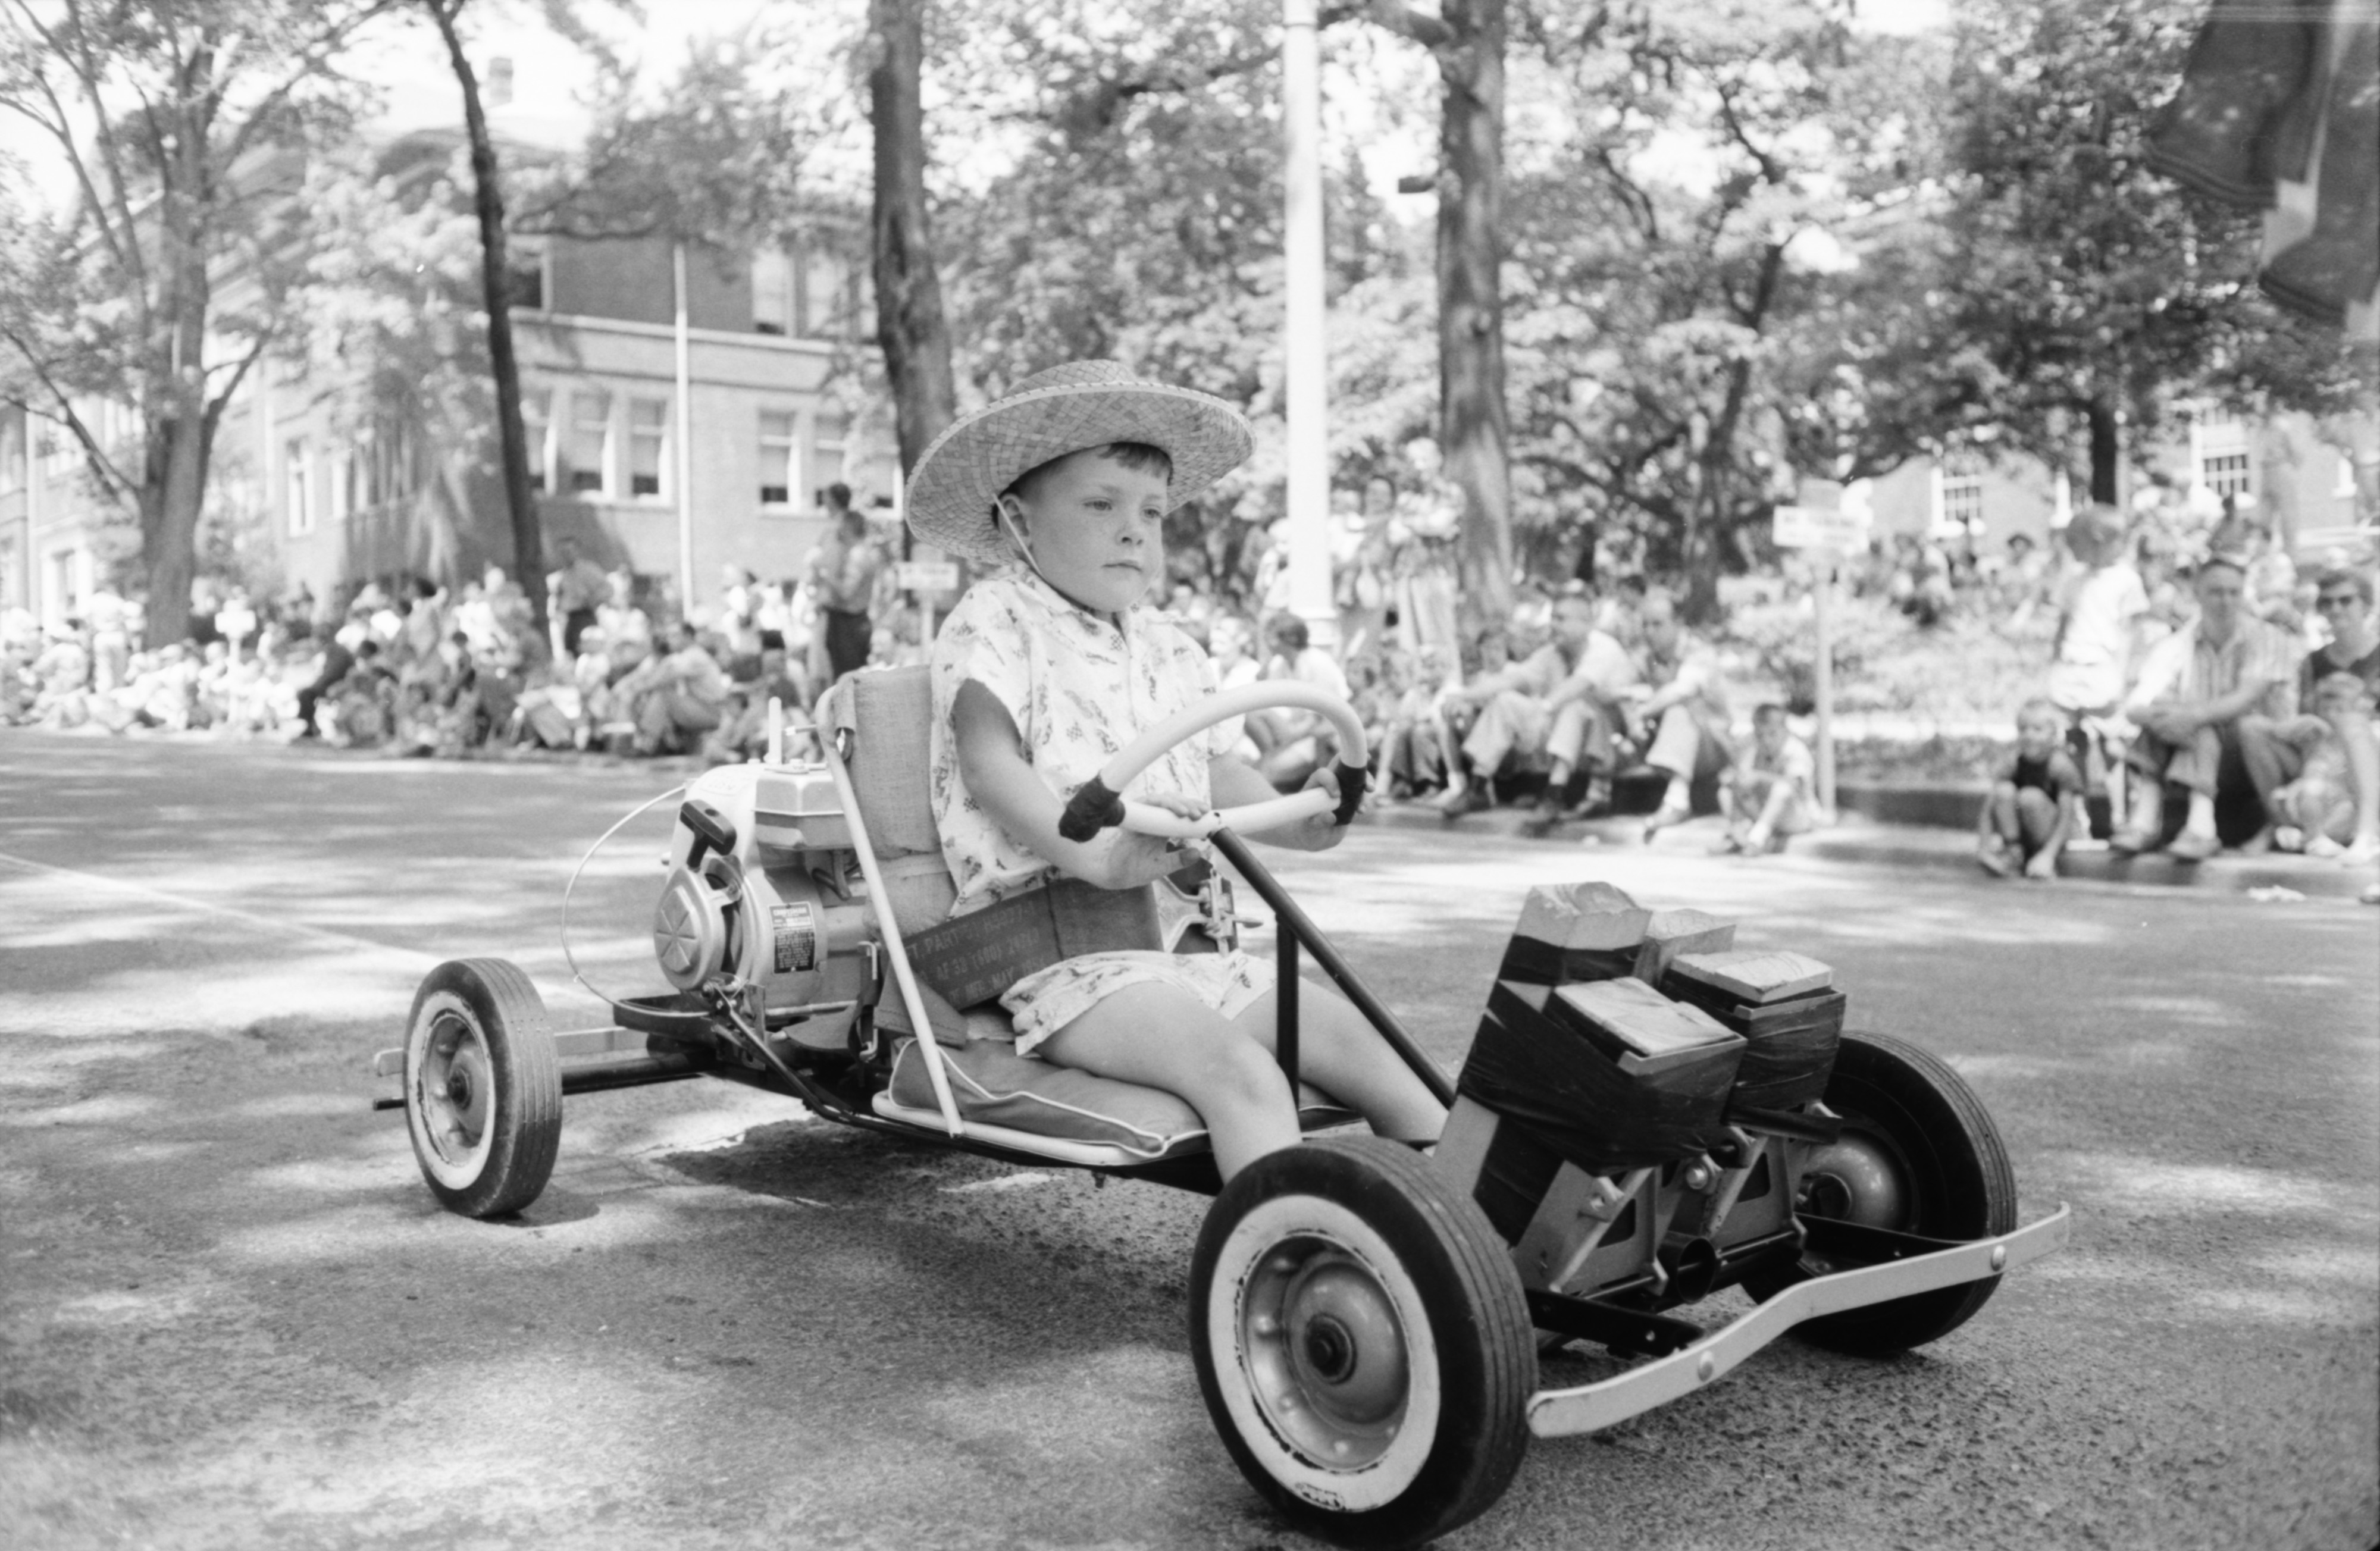 Little Boy 'Drives' His Vehicle In The Ypsilanti Fourth Of July Parade, July 1959 image